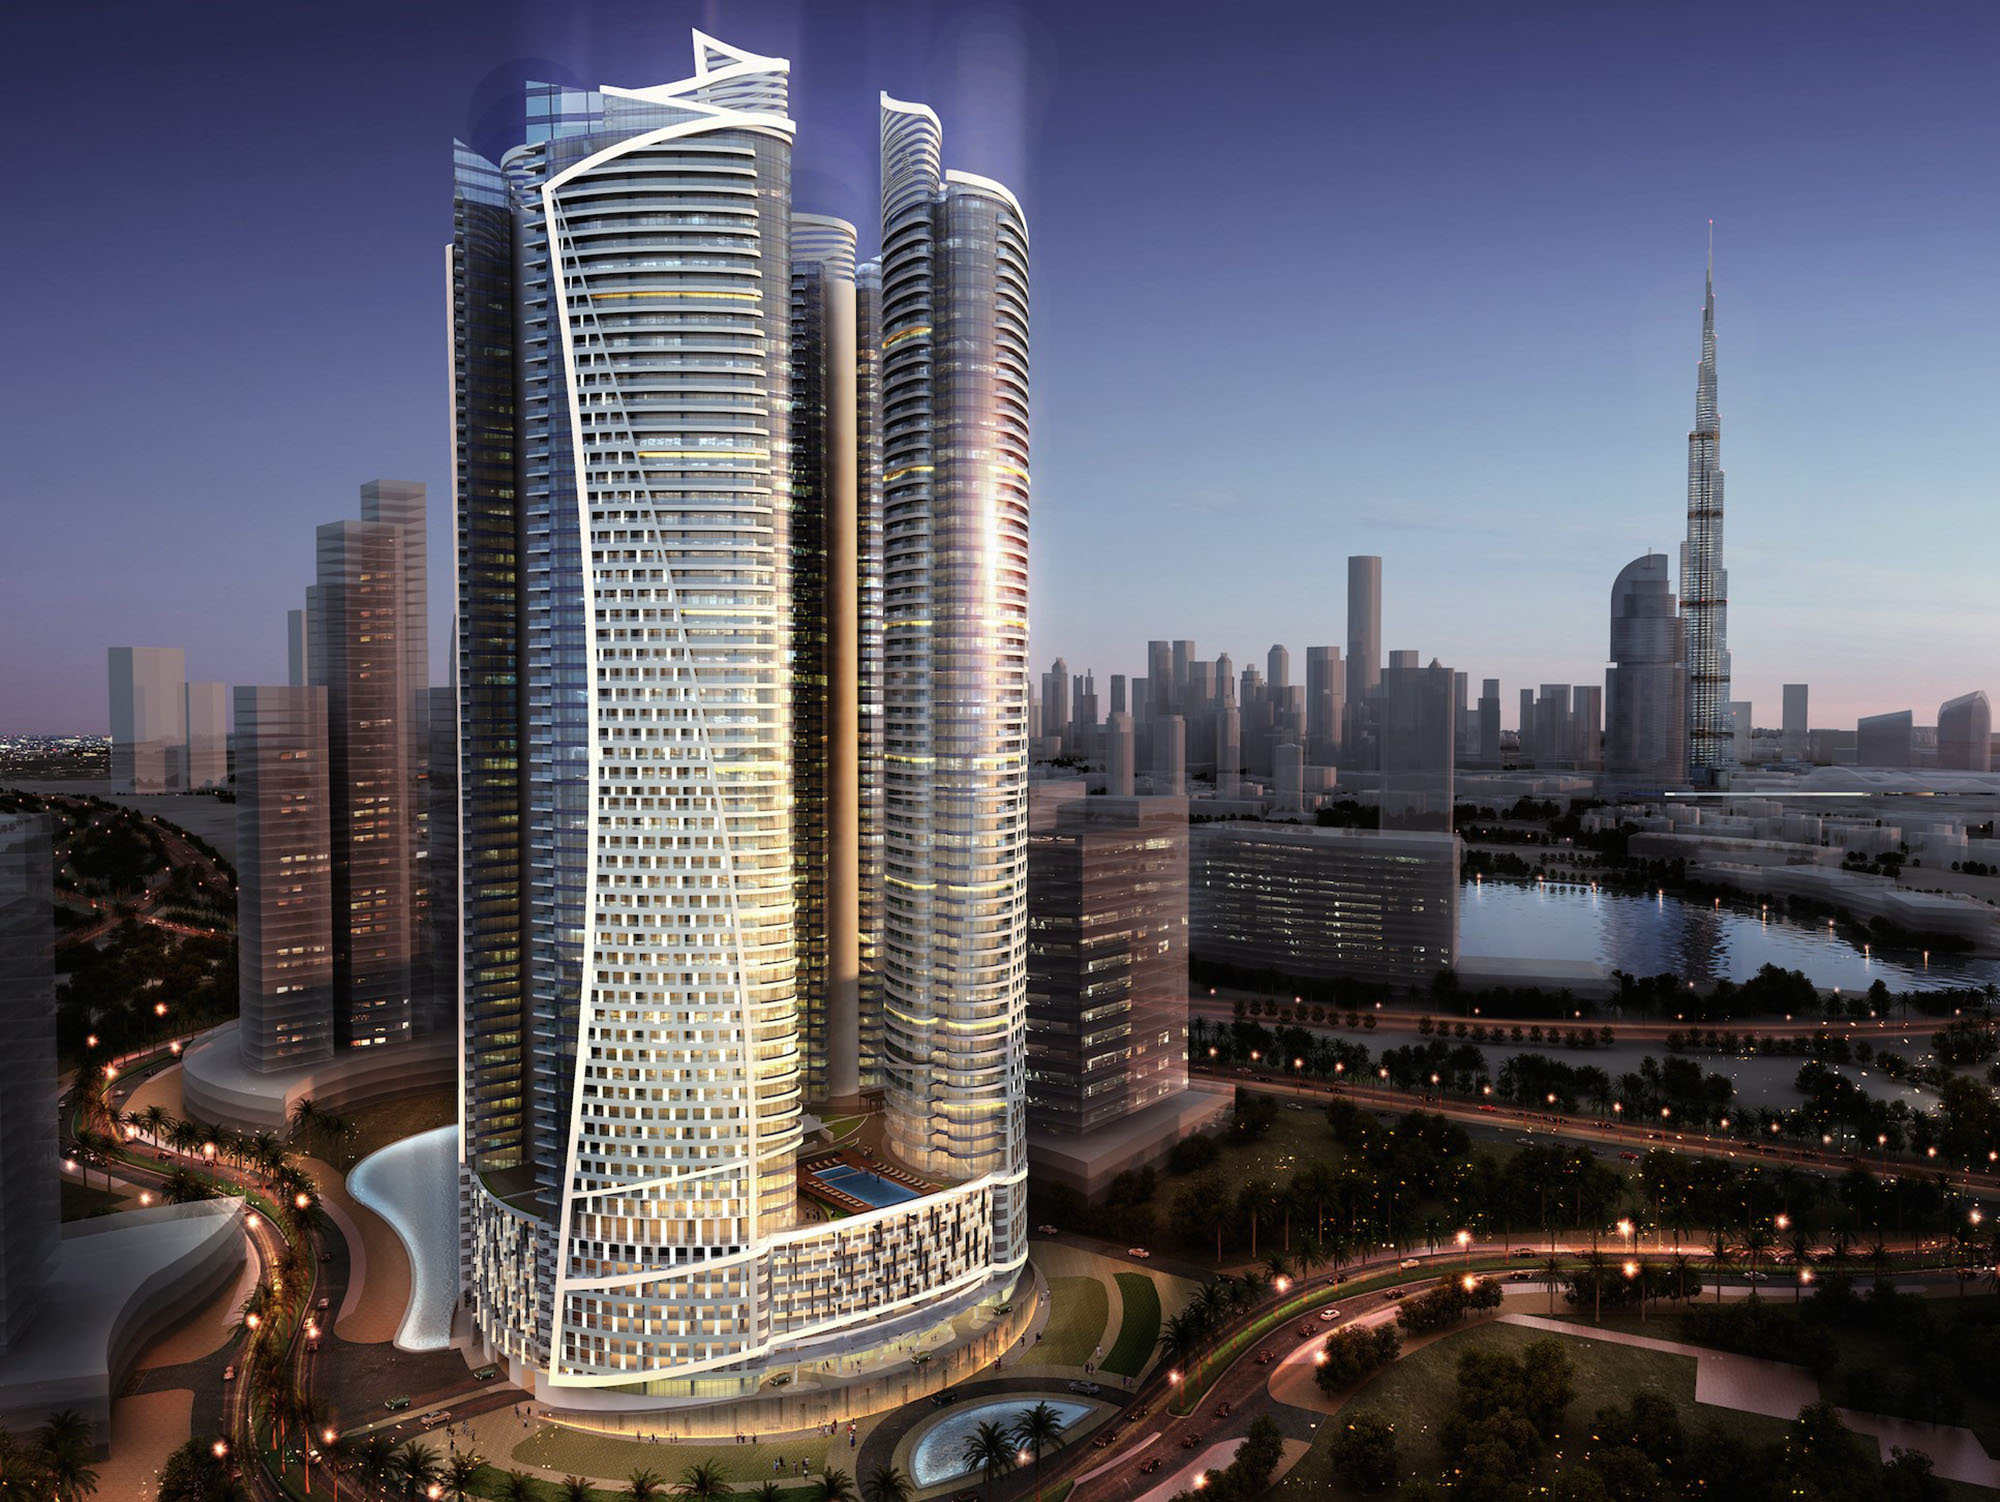 541 PROJECTS AND 158,950 ROOMS IN MIDDLE EAST HOTEL